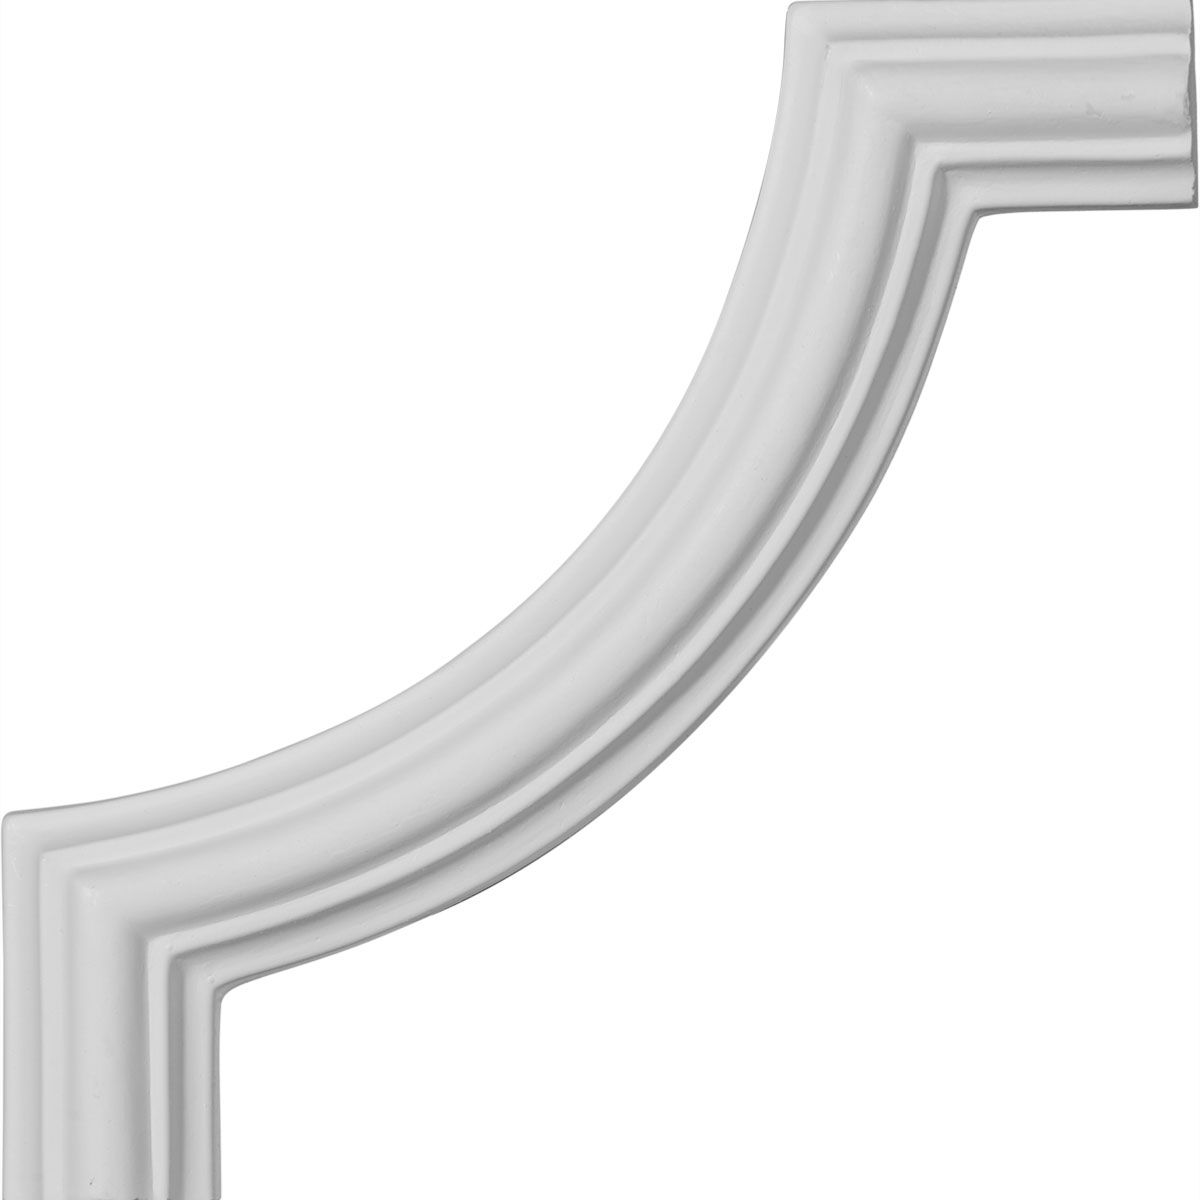 5 1 8 Inch W X 5 1 8 Inch H Large Classic Panel Moulding Corner Matches Moulding Pml00x00cl Panel Moulding Picture Frame Molding Wall Panel Molding